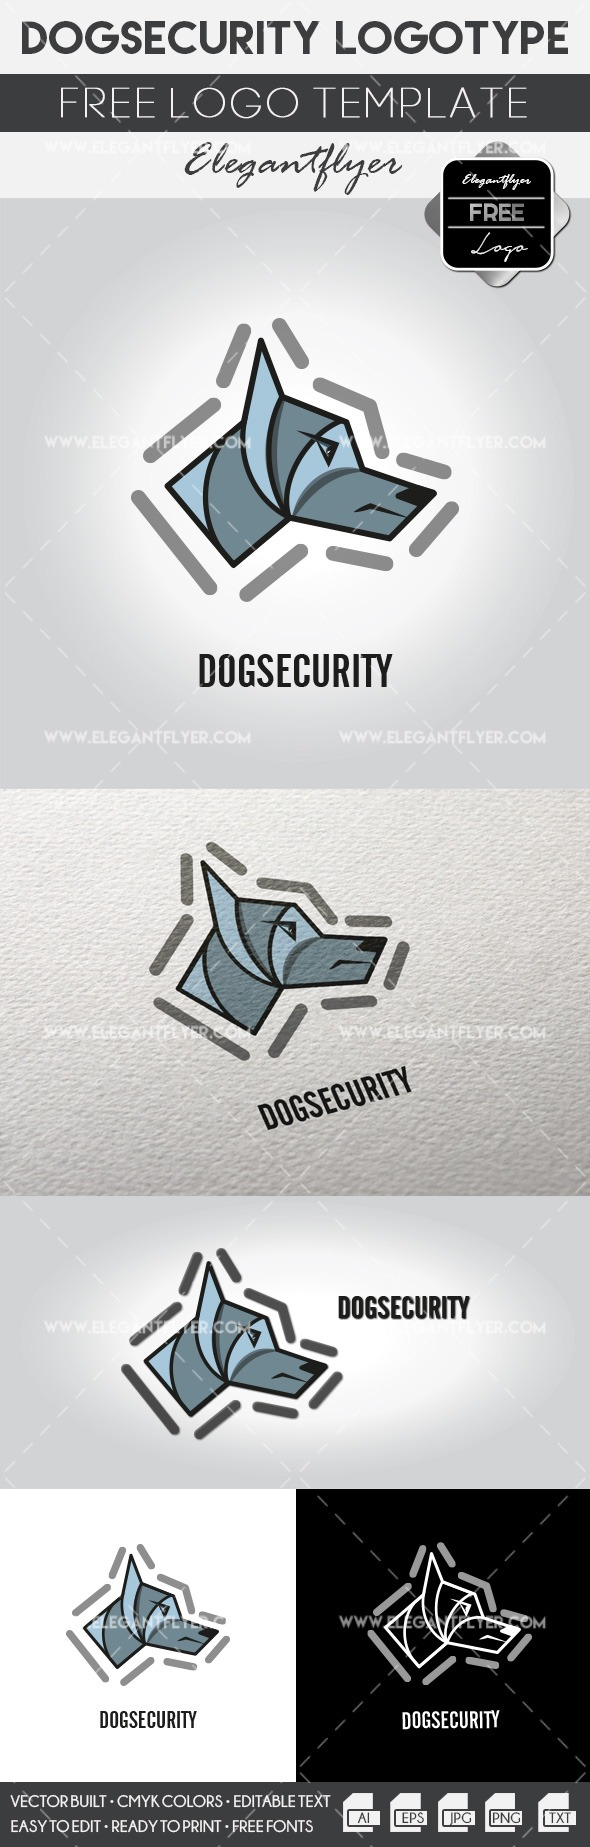 Dogsecurity – Free Logo Template